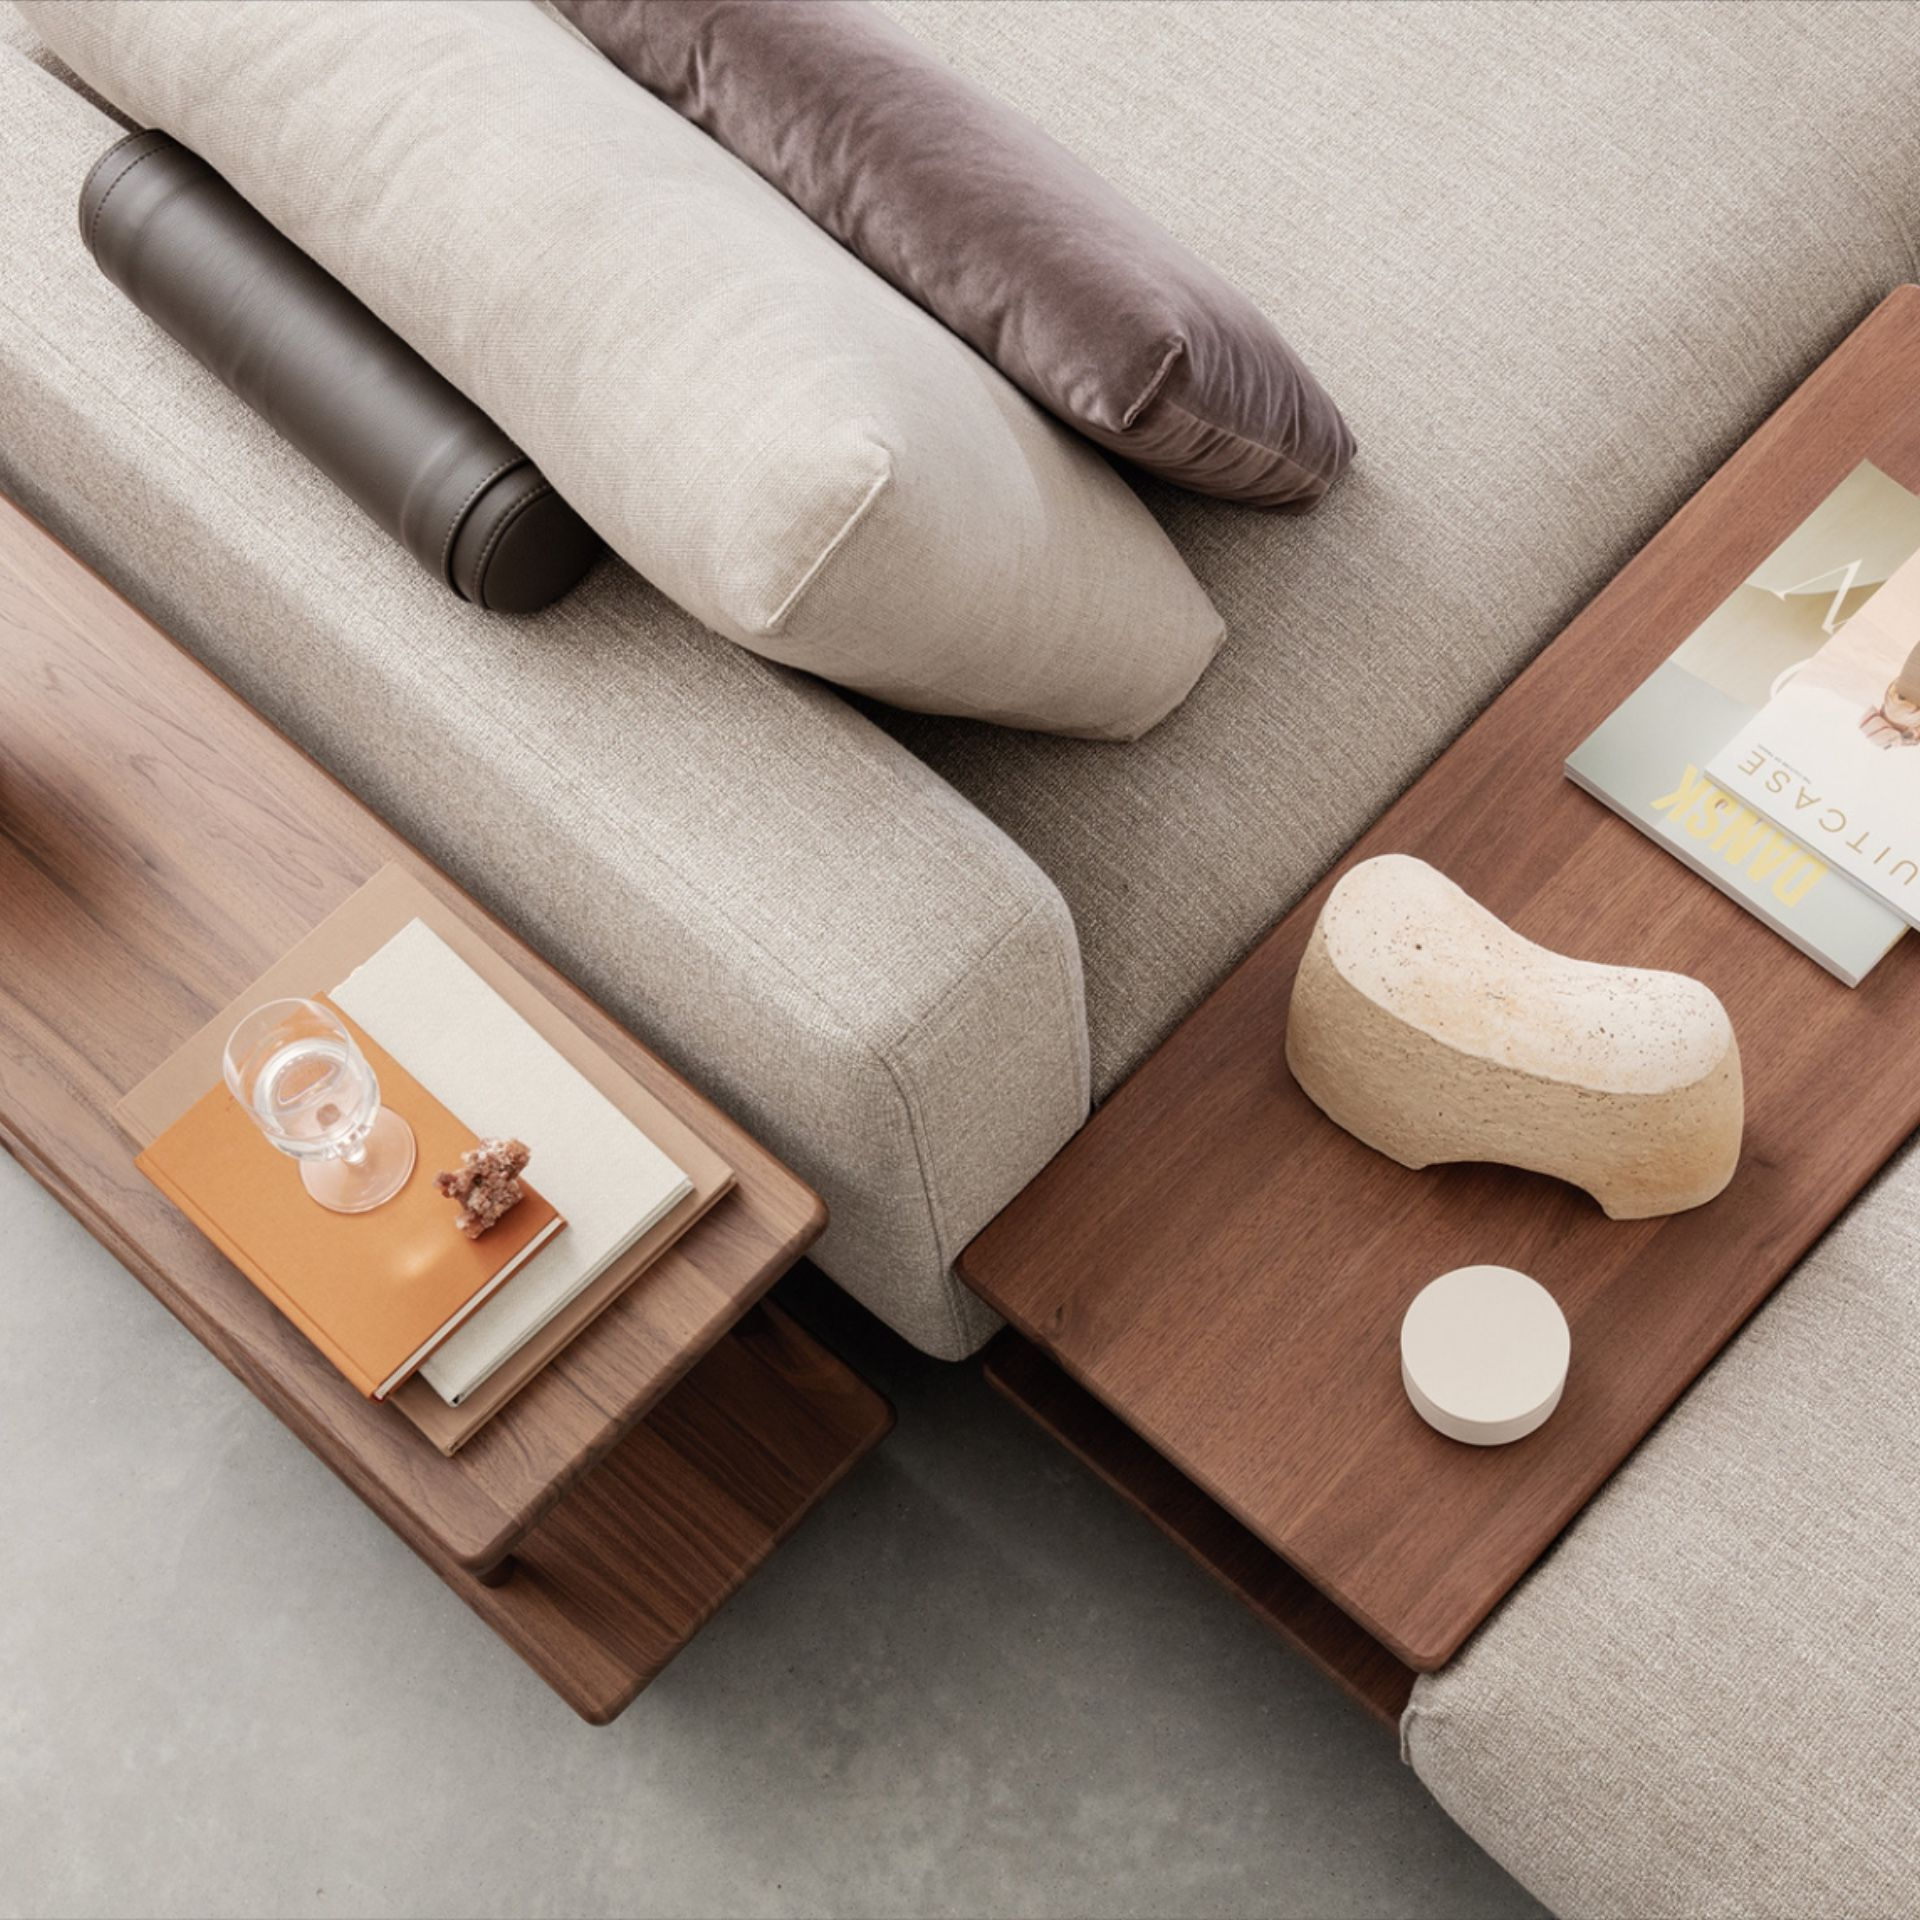 The Volo Sofa Range By Rolf Benz Offers Flexible Design Compositions The Individual Elements Can Be Free Standing Or Modern Furniture Stores Lounge Sofa Sofa